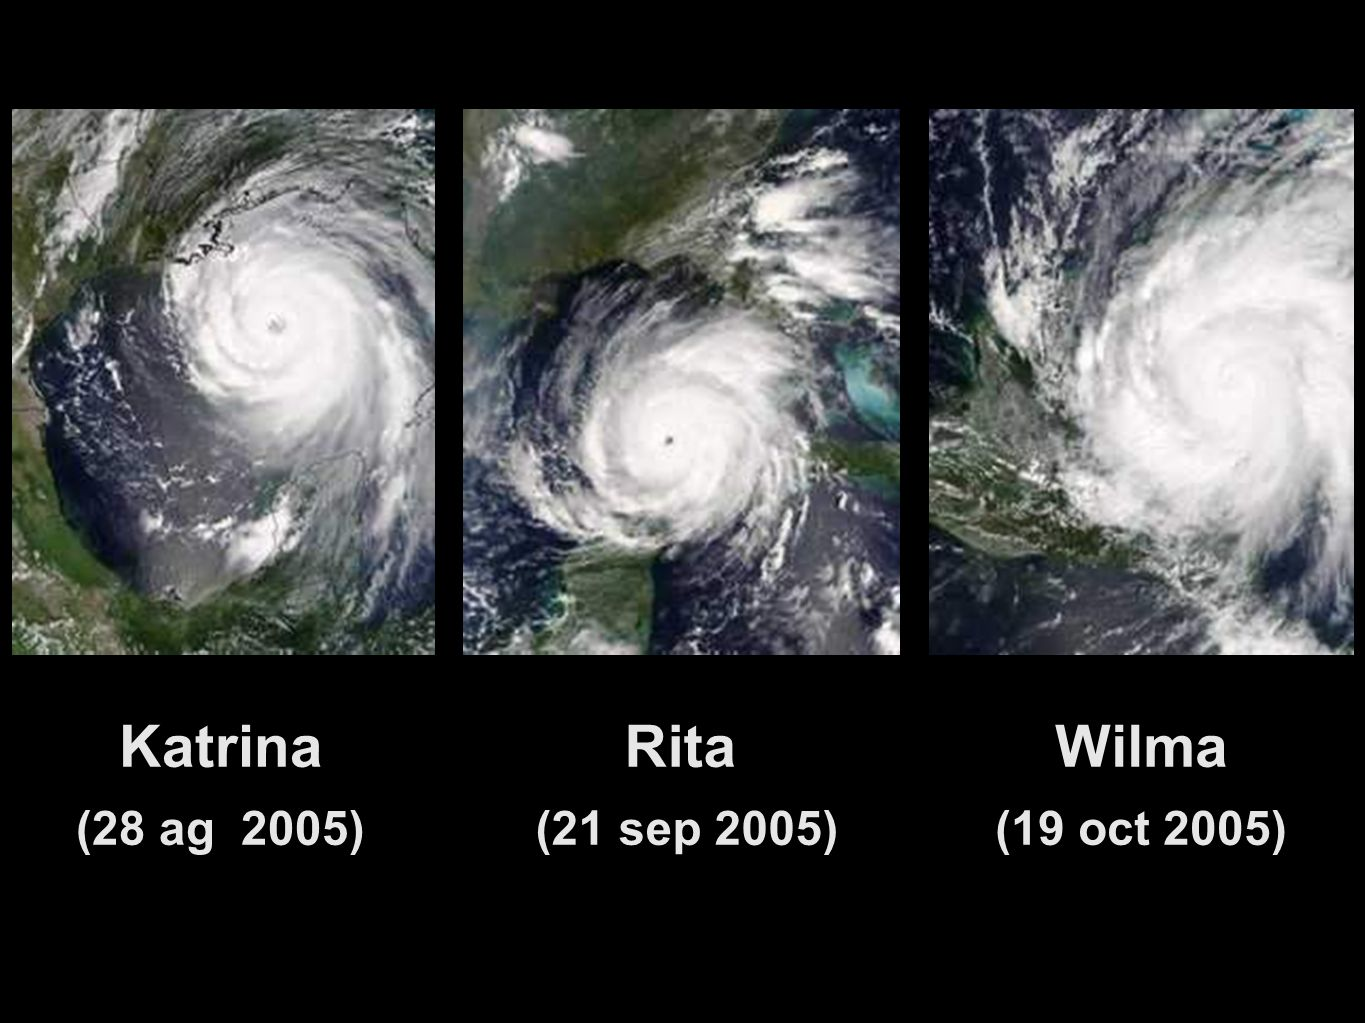 Katrina (28 ag 2005)‏ Rita (21 sep 2005)‏ Wilma (19 oct 2005)‏ 72